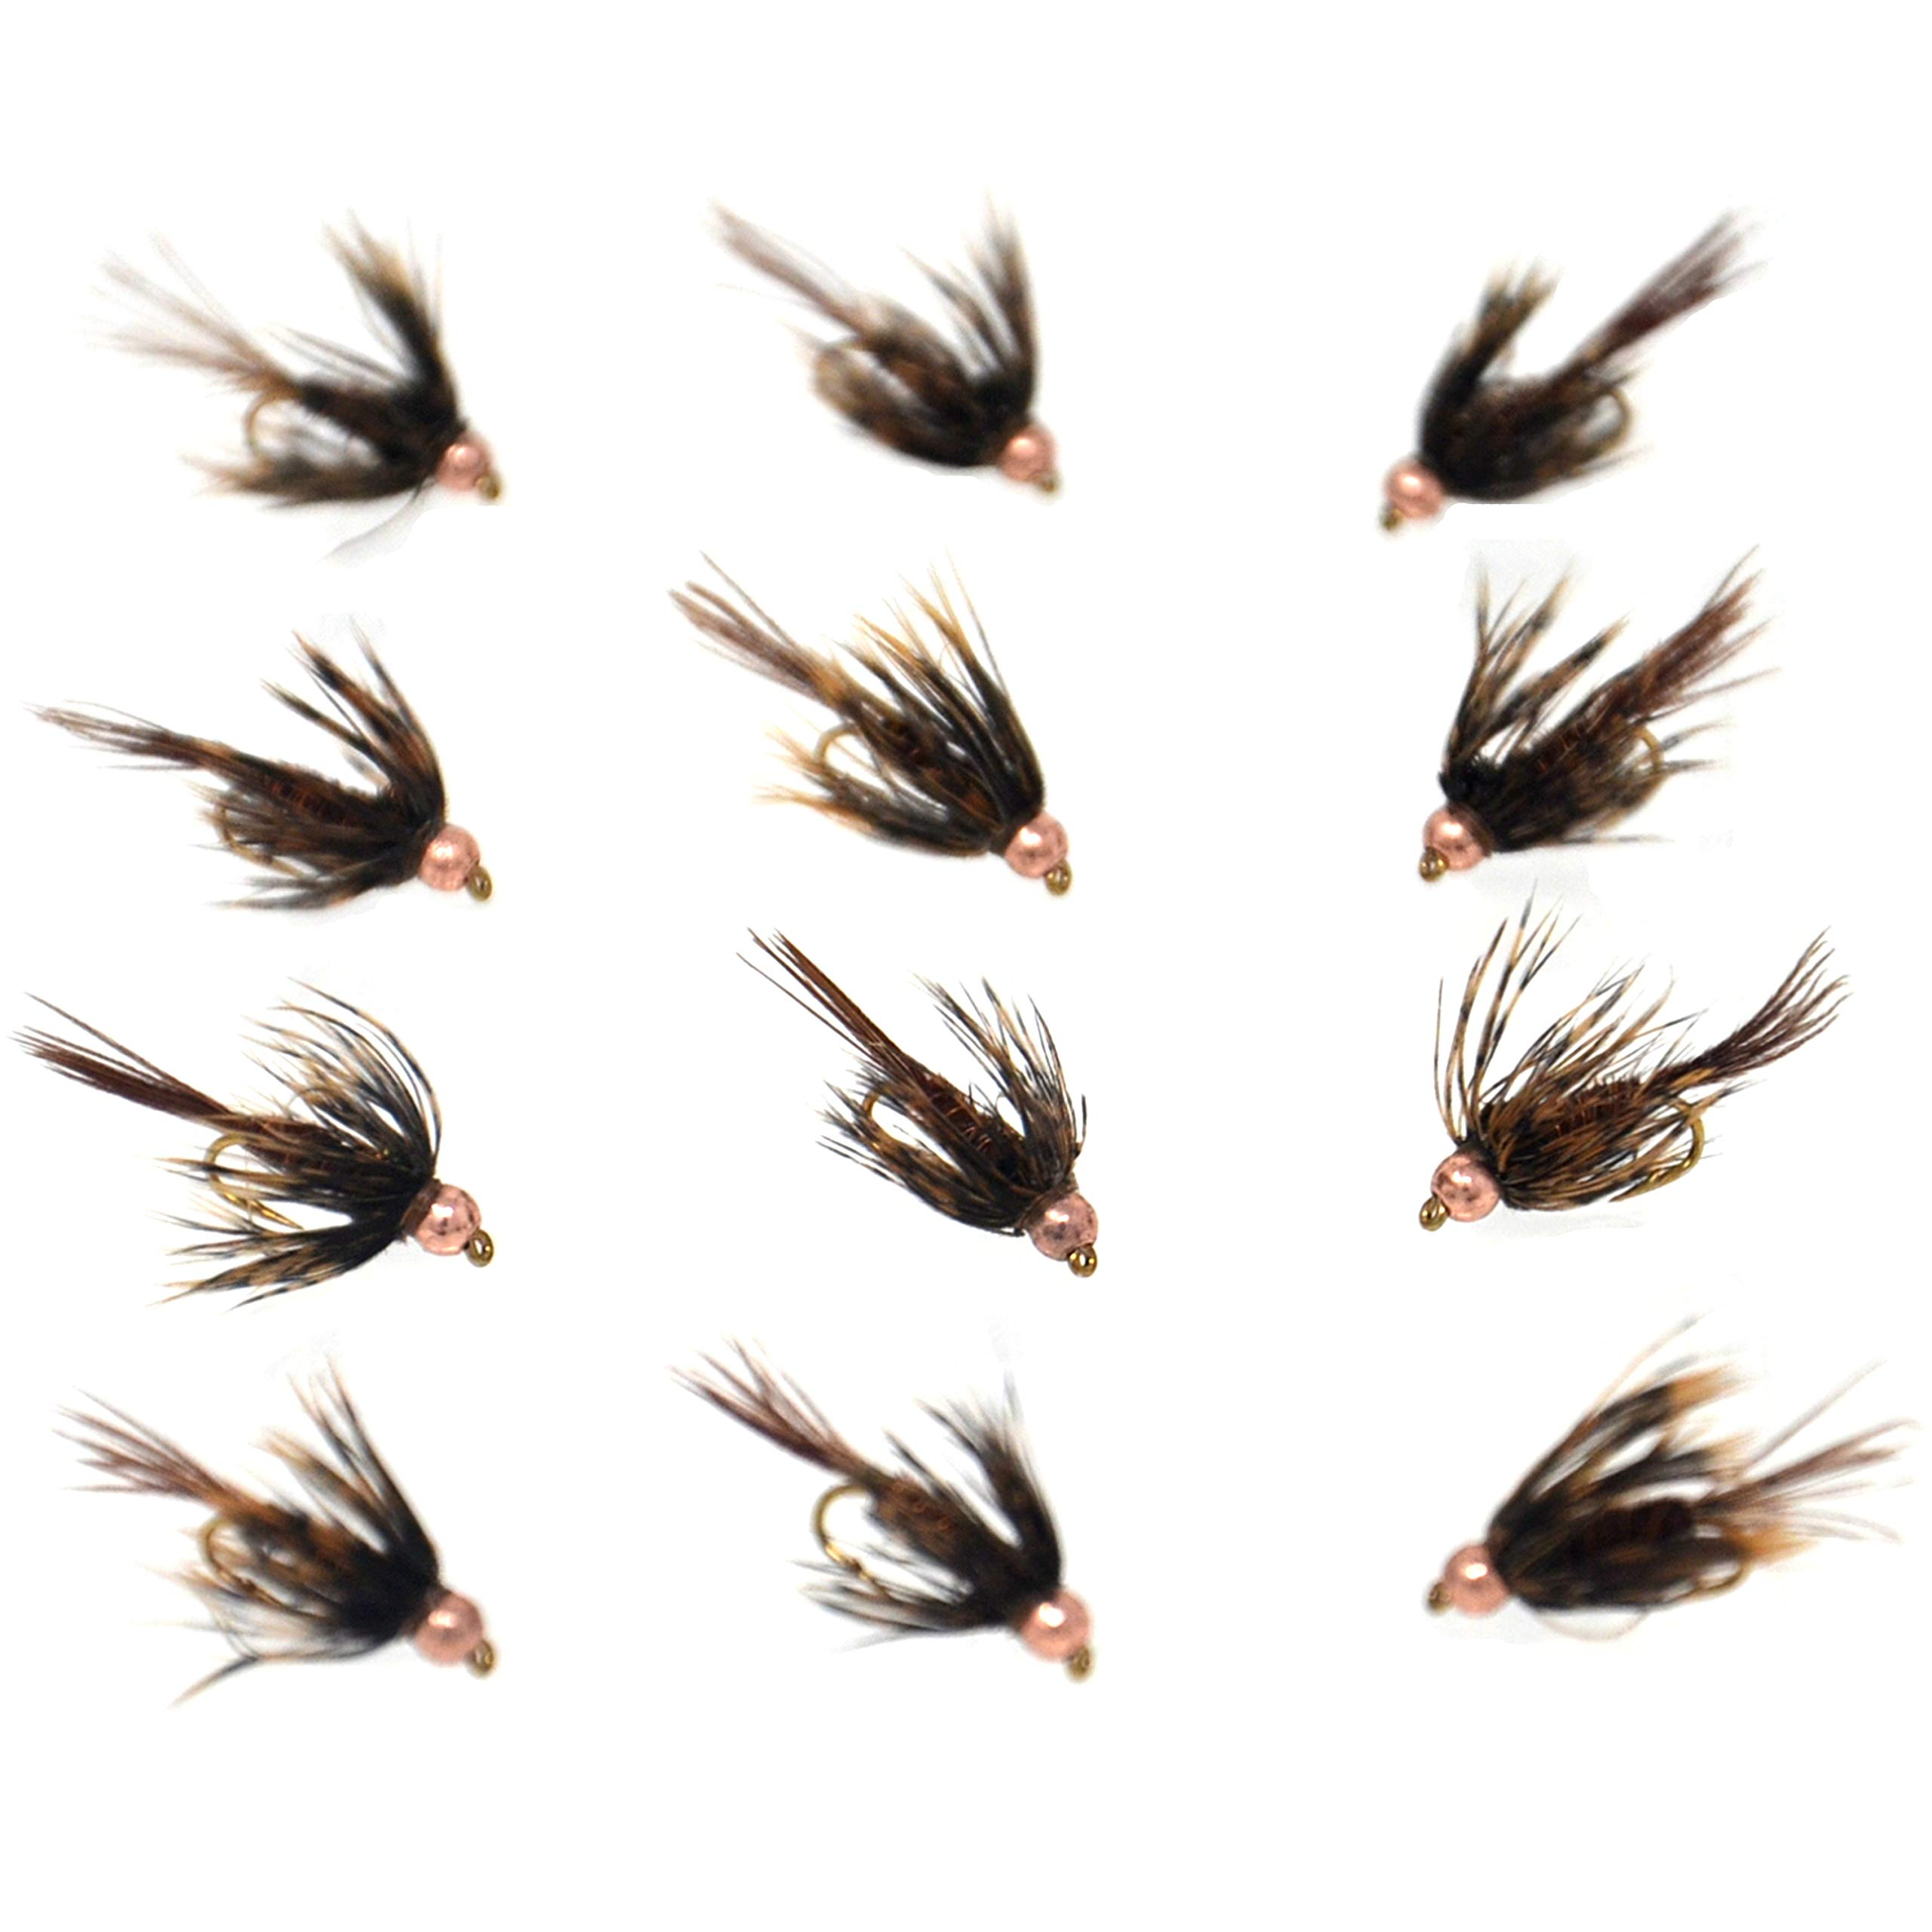 Outdoor Planet 12 Bead Head Soft Hackle Pheasant Tail Mayfly Nymph Flies/Wet Flies for Trout Fly Fishing Flies Lure Assortment by Outdoor Planet